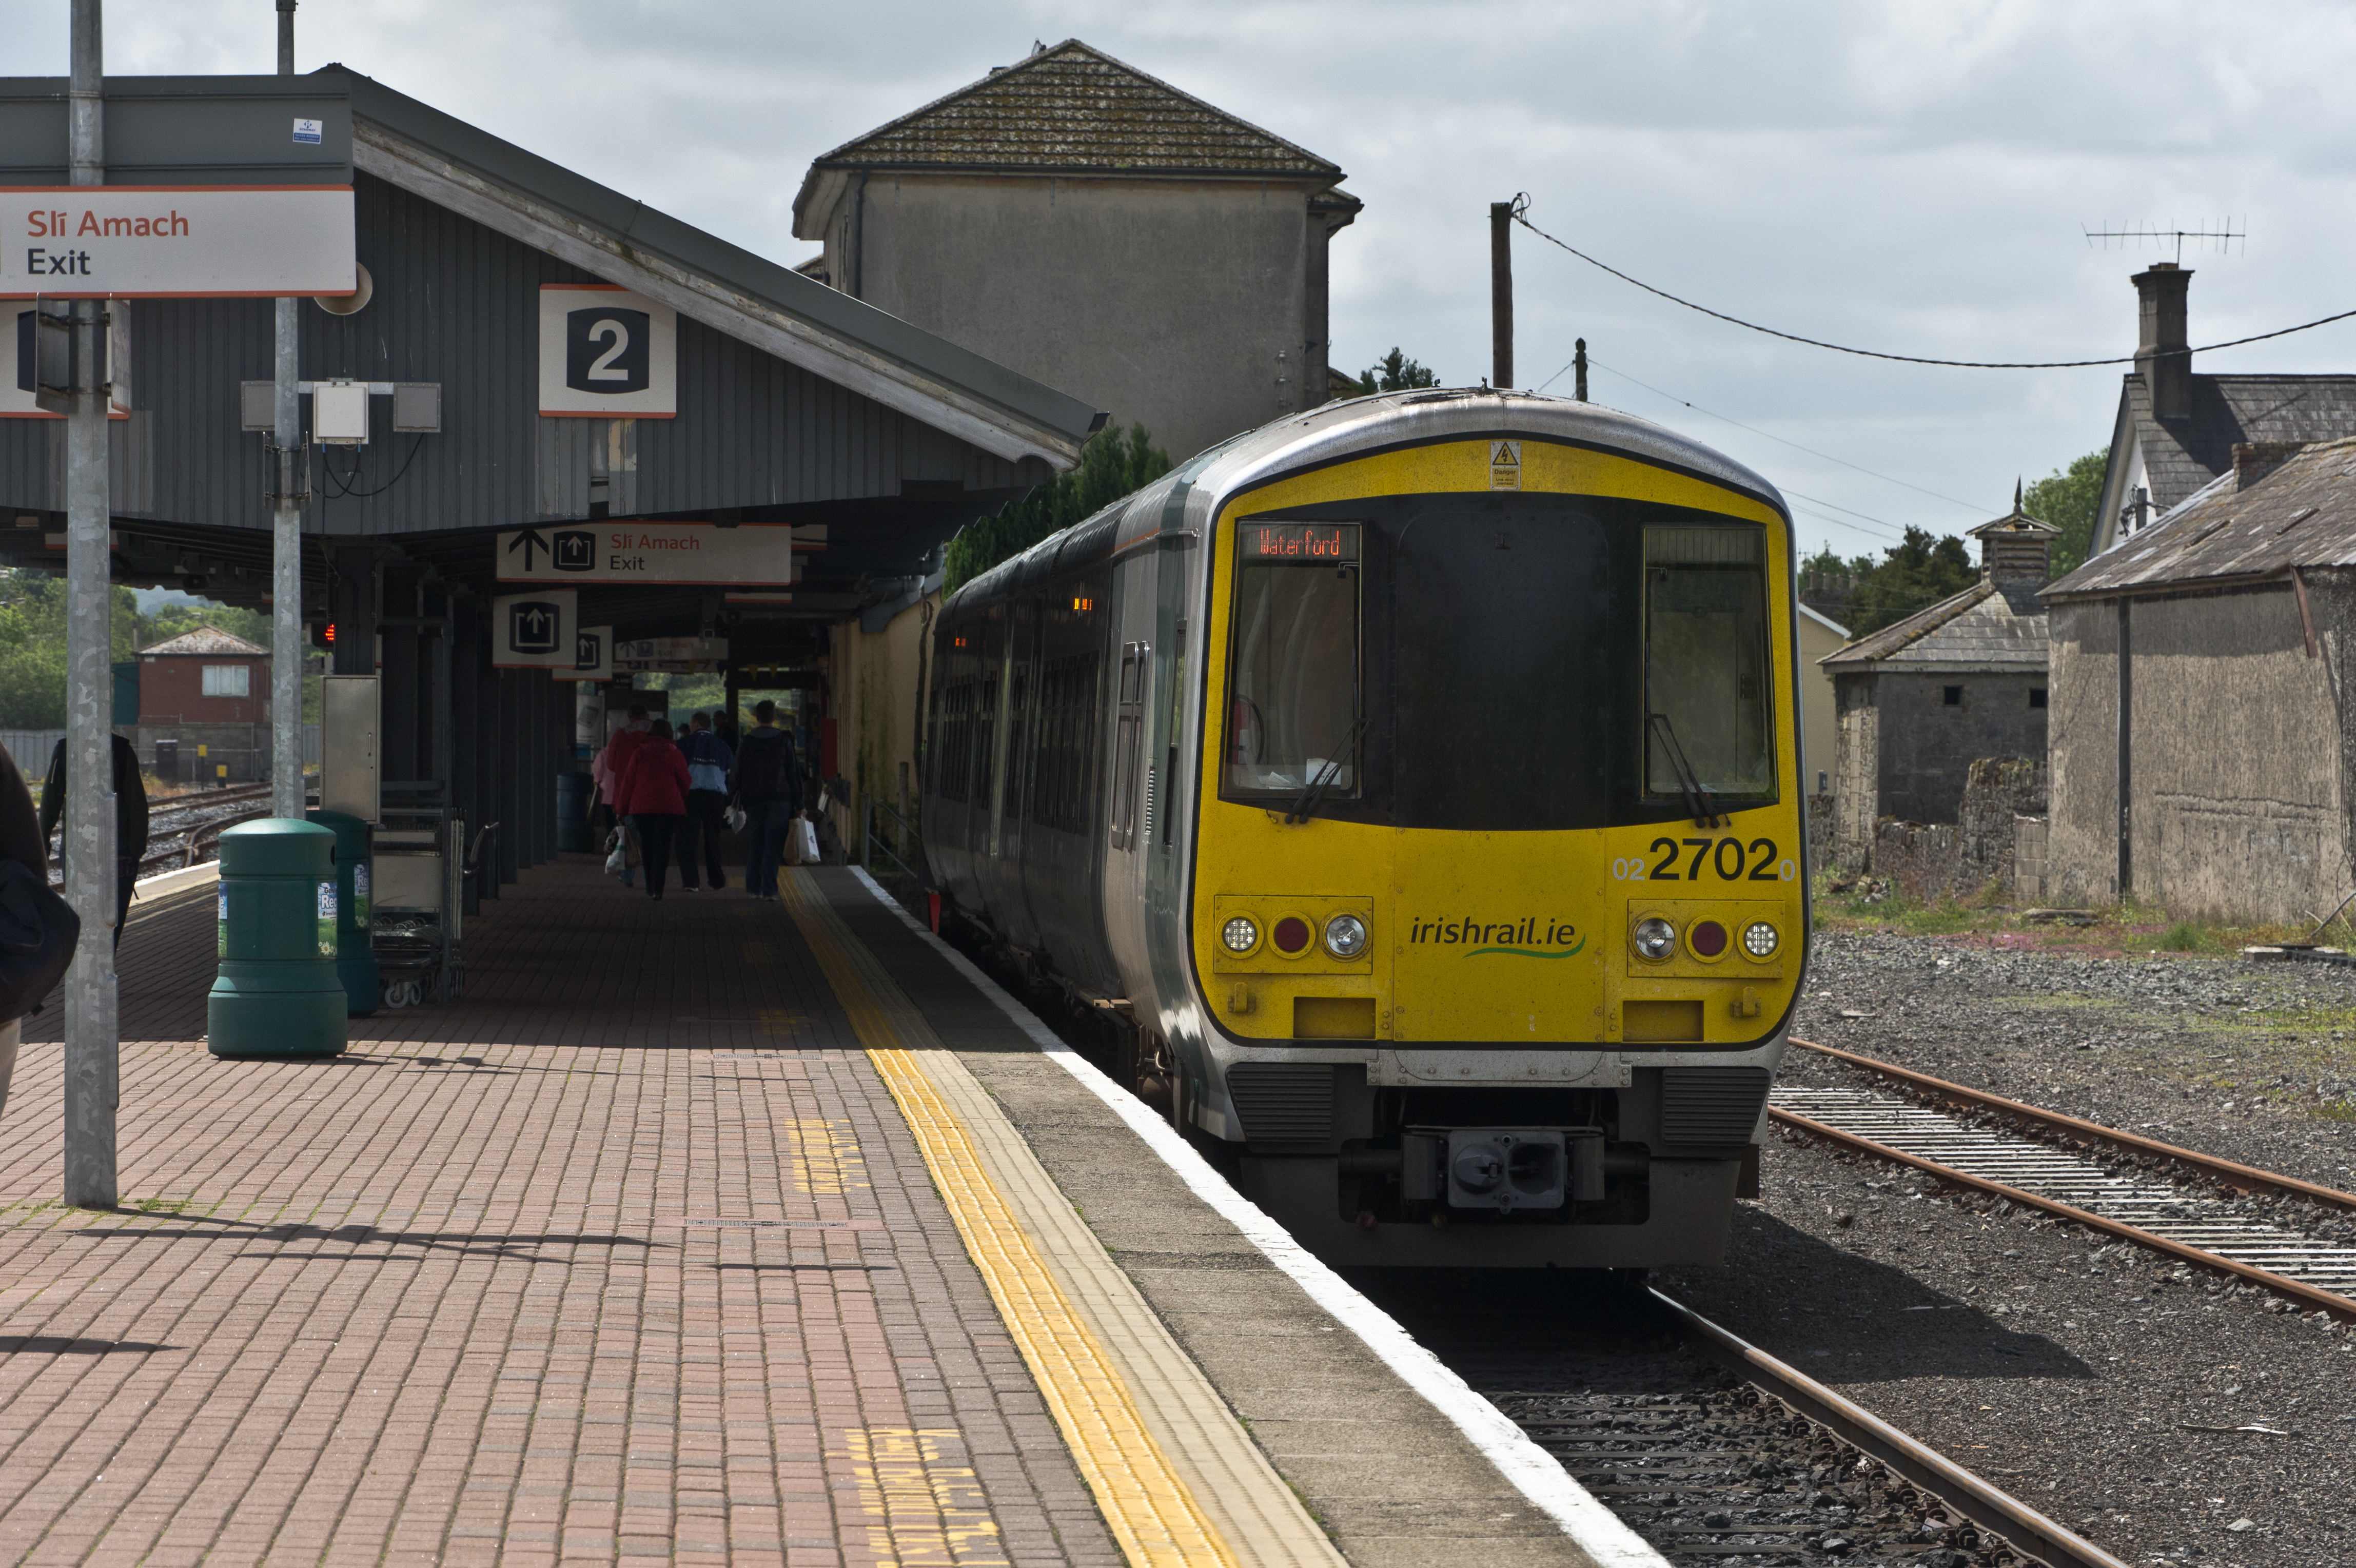 How does Irelands public transport compare with other